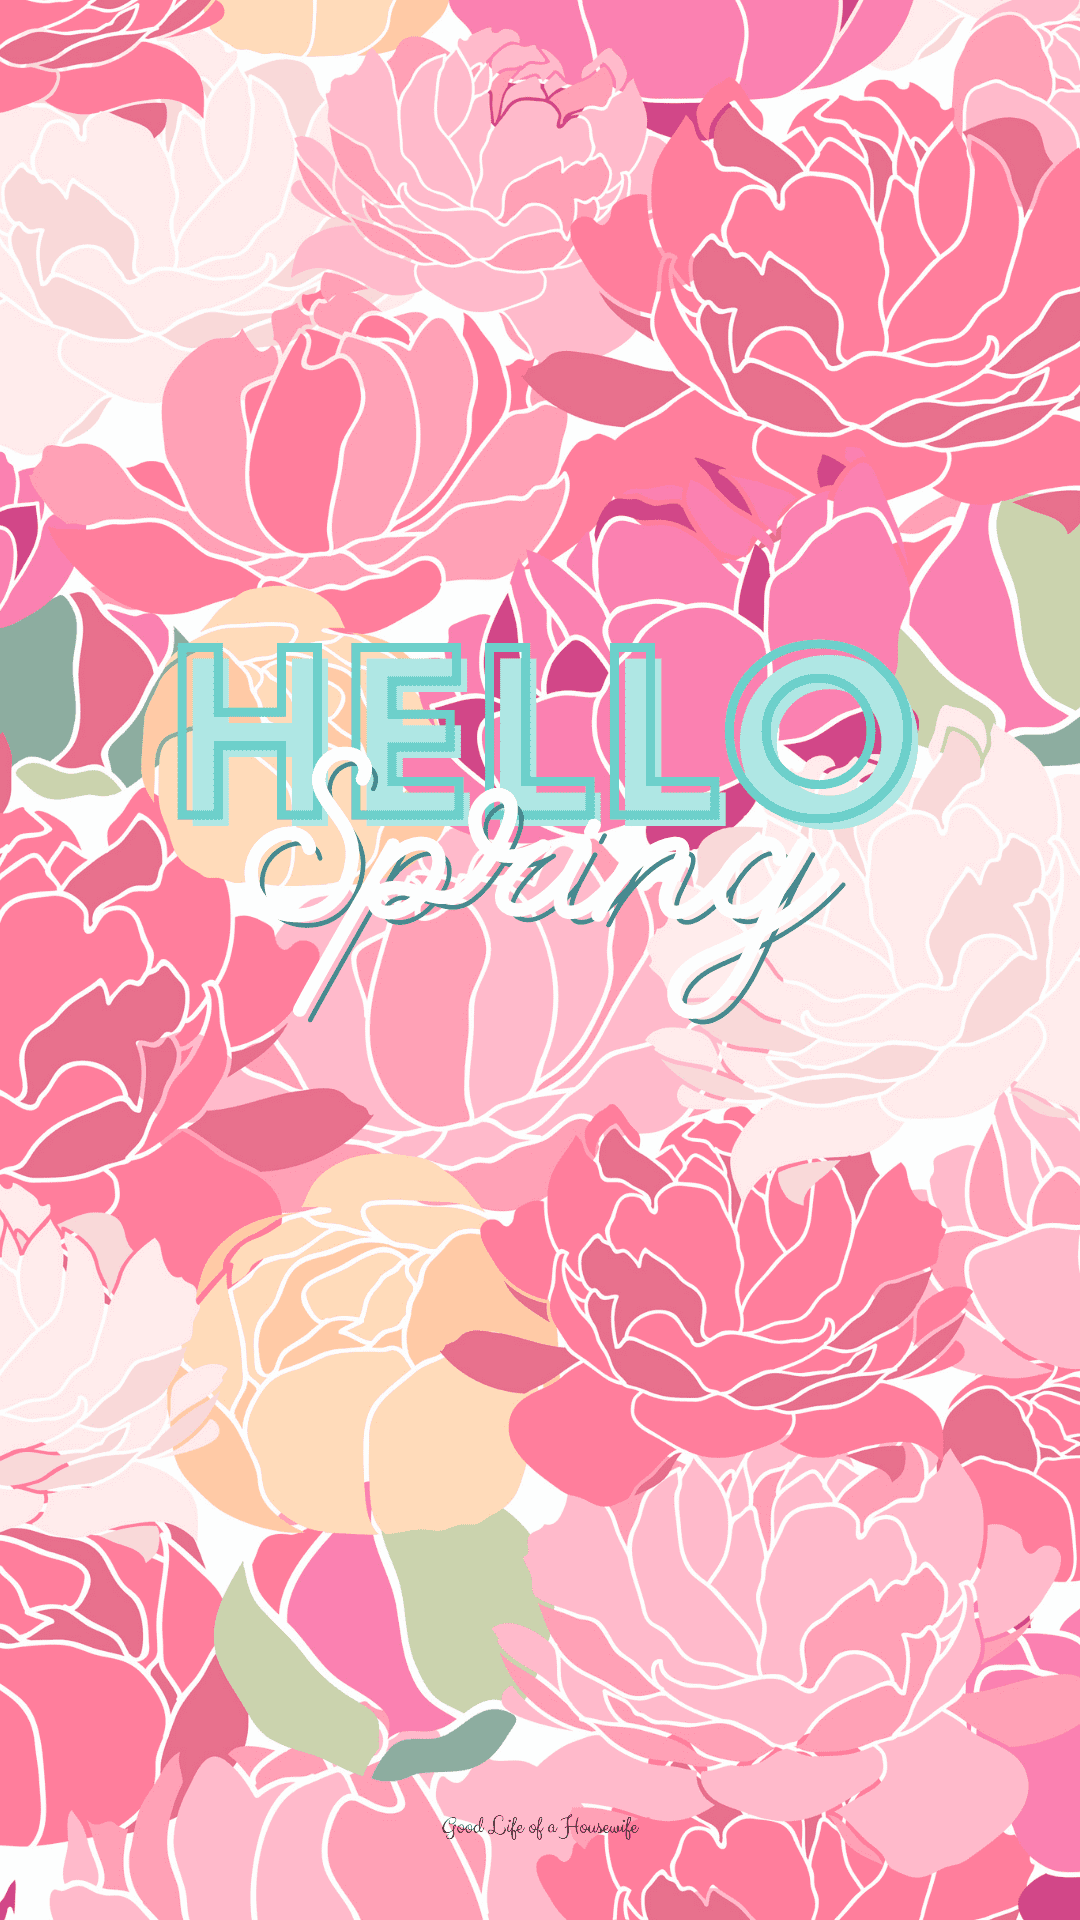 Hello Spring iPhone Wallpaper - Good lIfe of a Housewife